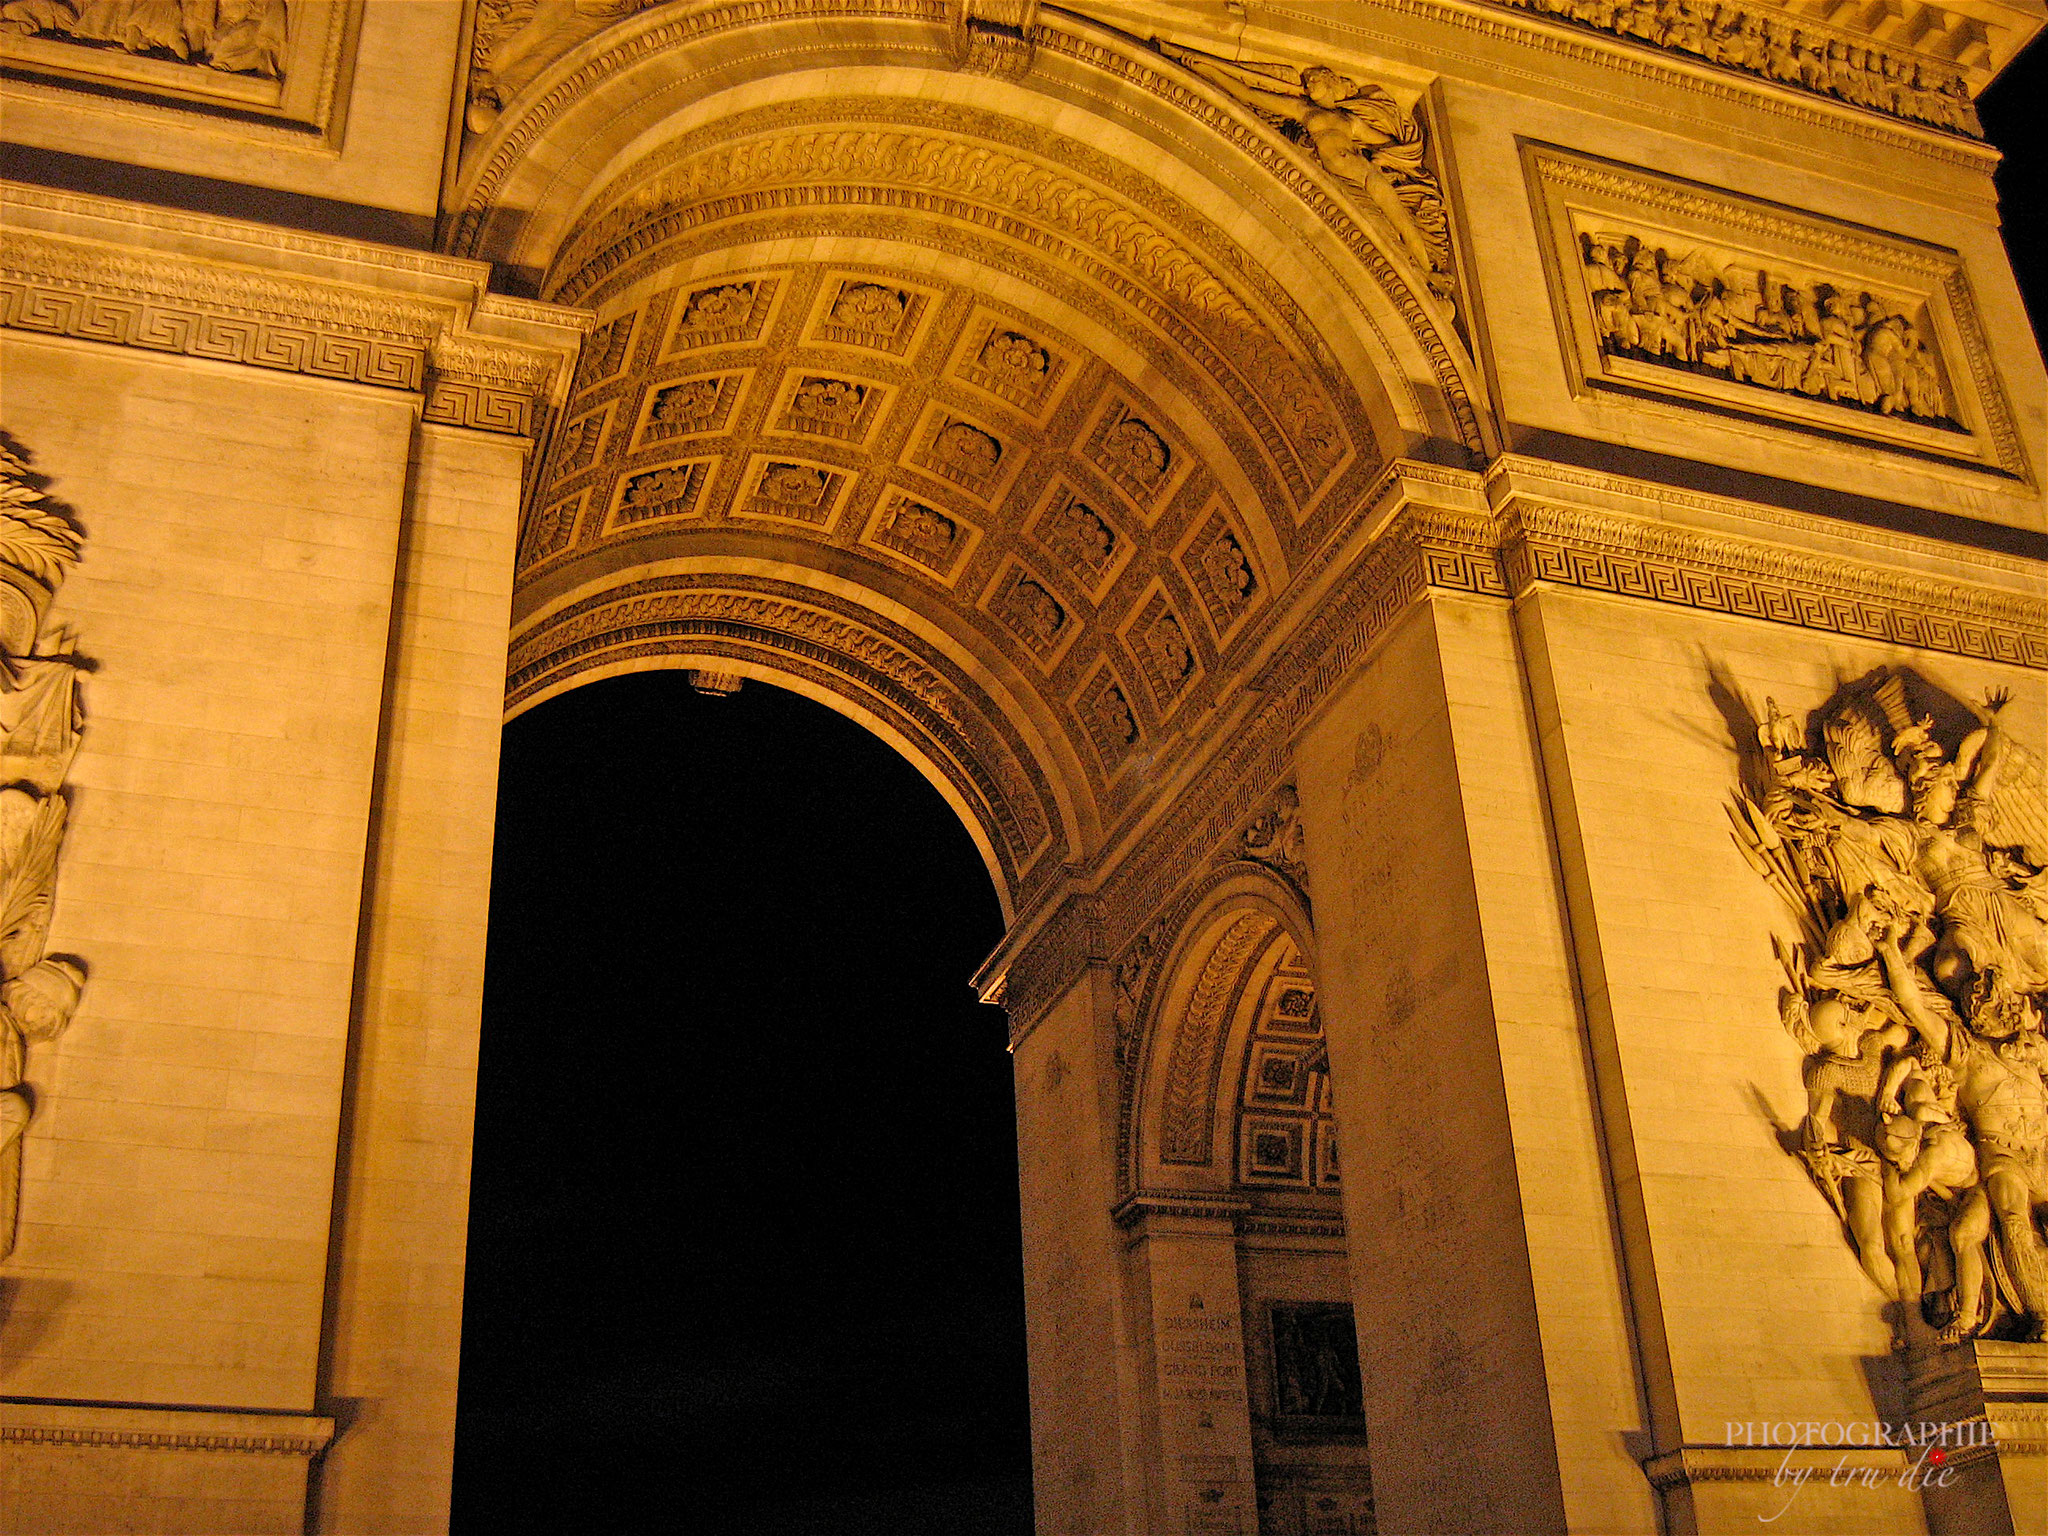 Bild: Am Arc de Triomphe in Paris